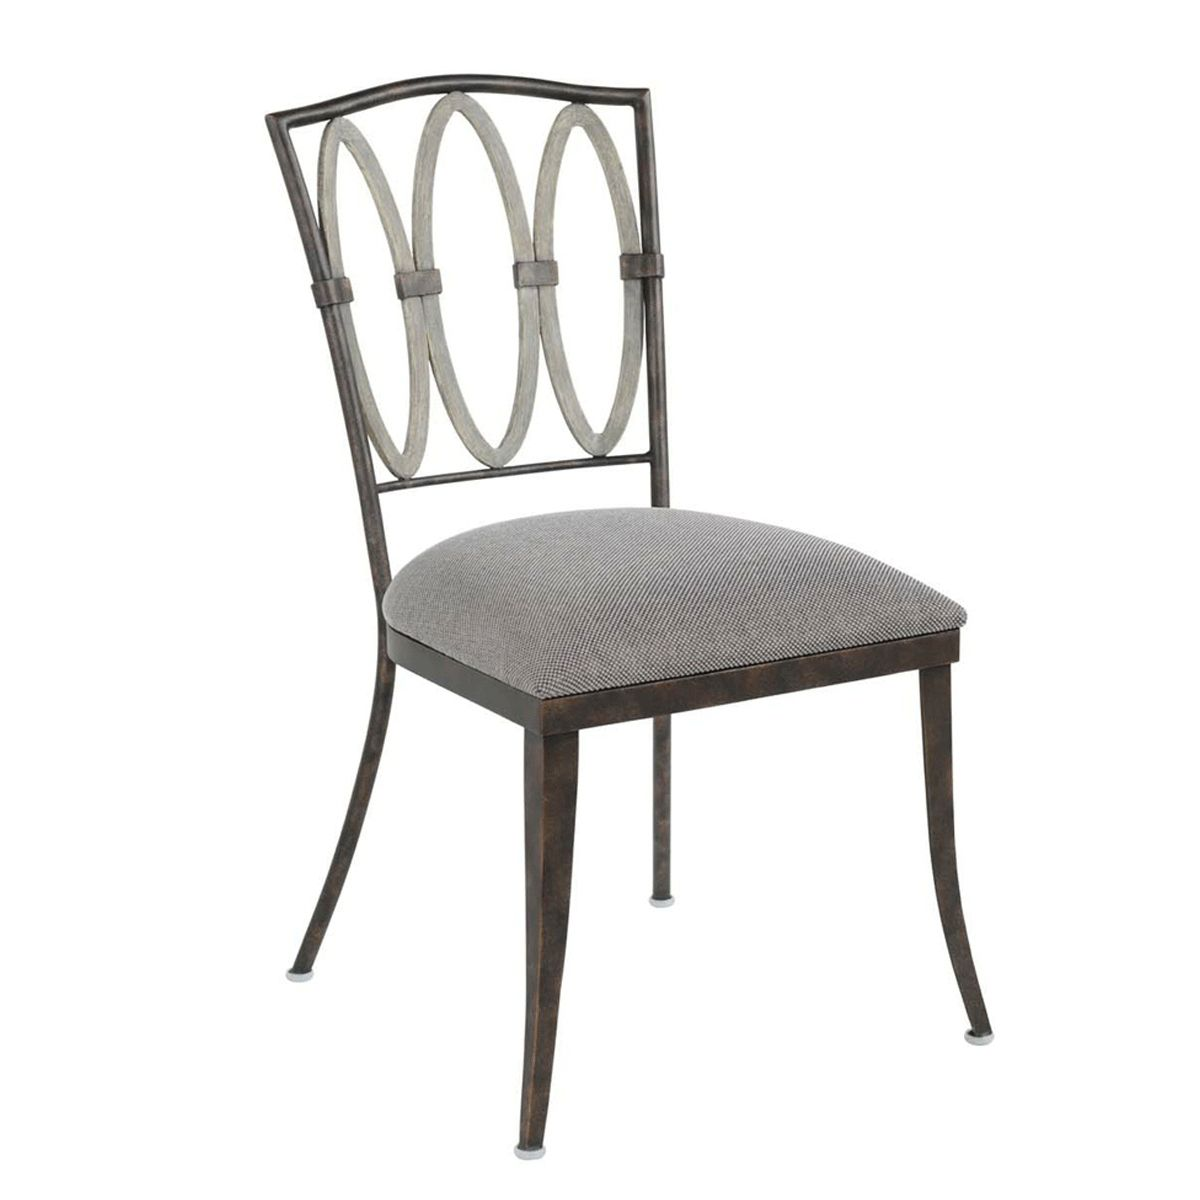 Morgan Dining Chairs without Arms - Set of 2